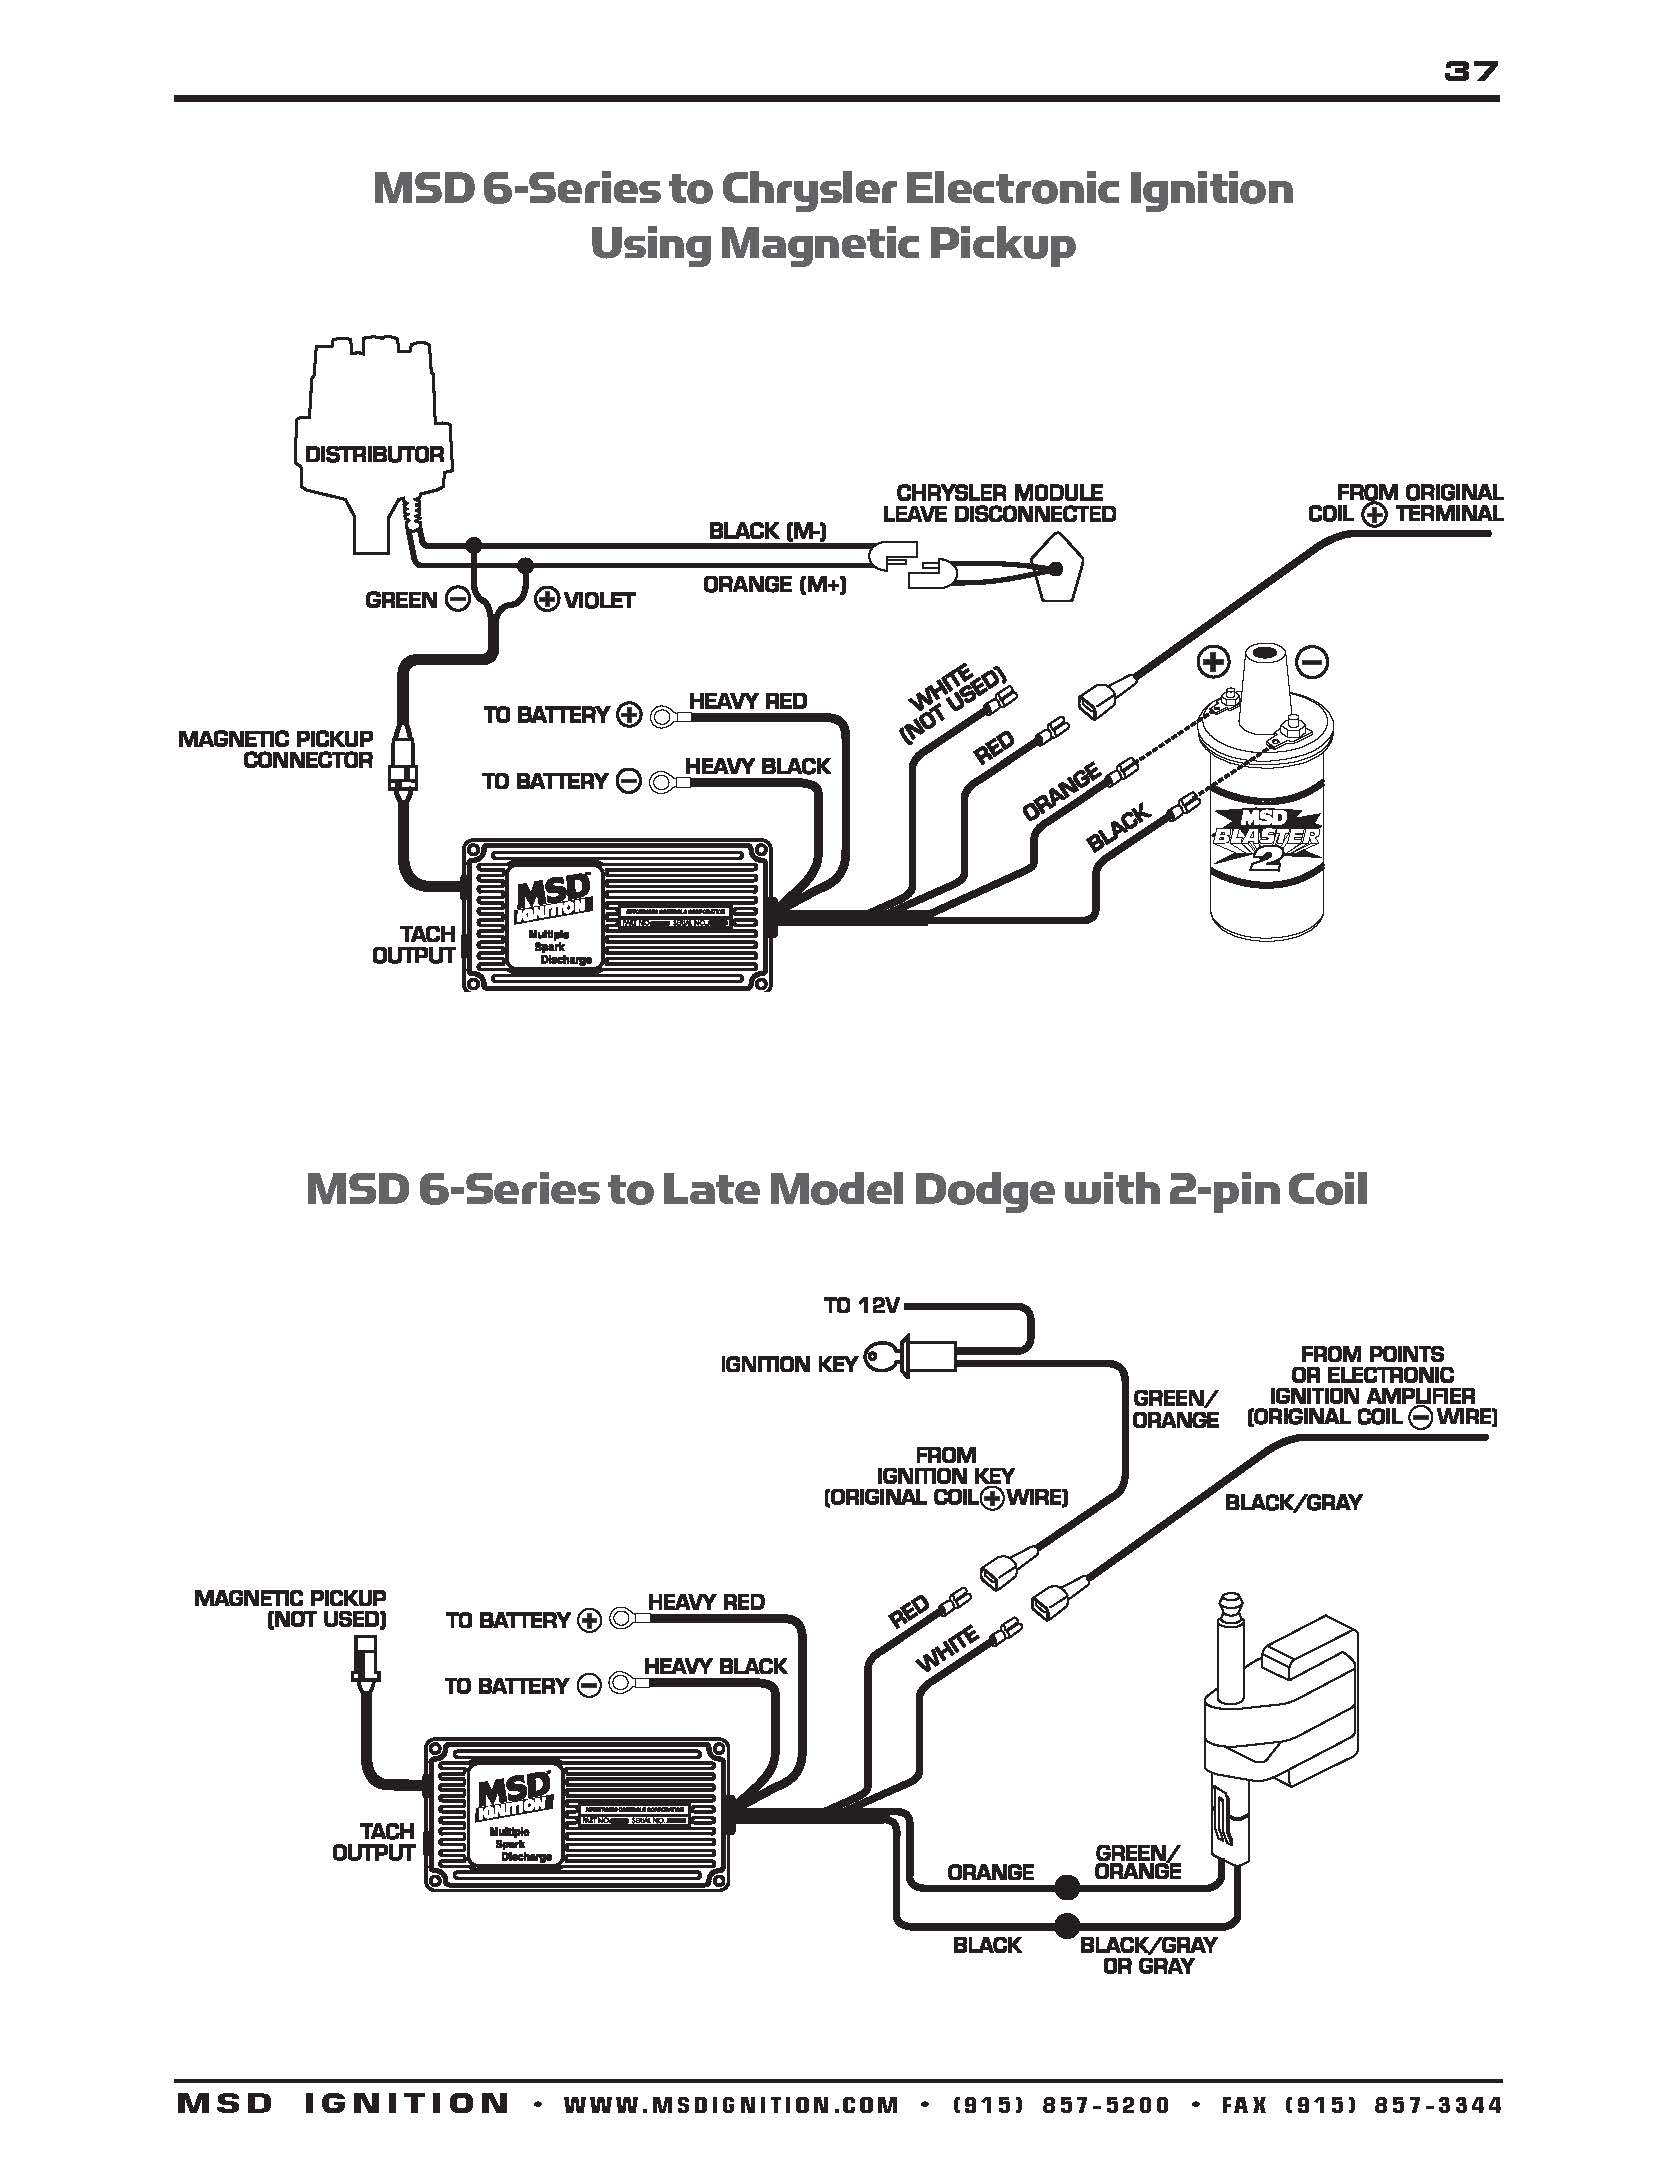 Msd Ignition 6Al Wiring Diagram Chevy | Manual E-Books - Msd Ignition Wiring Diagram Chevy